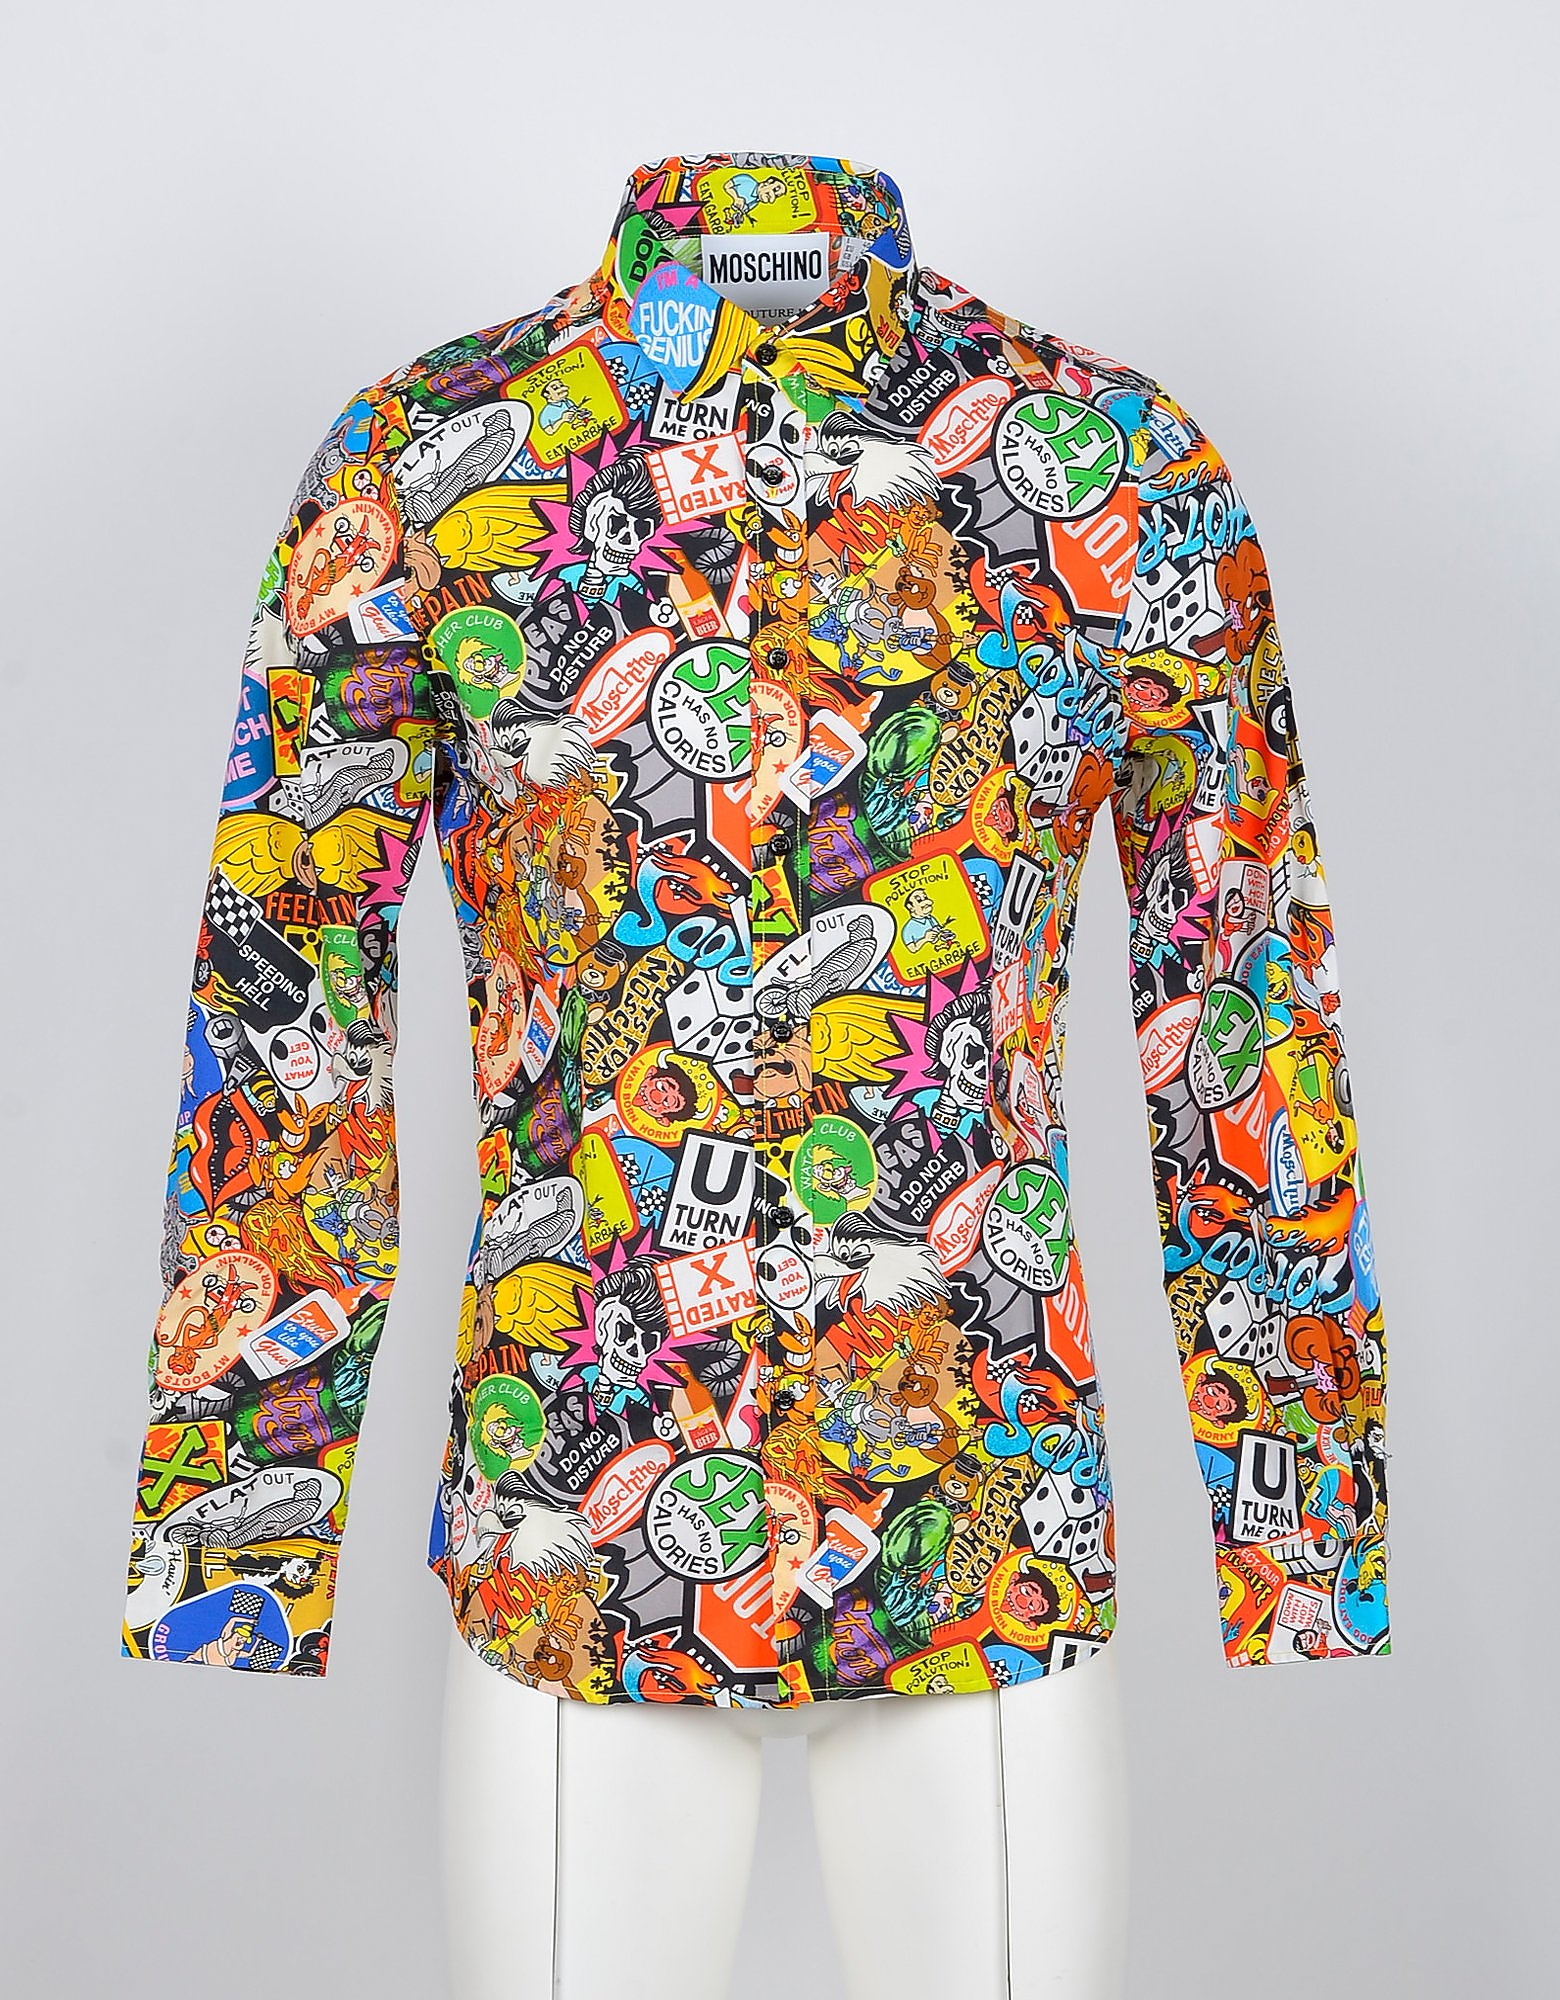 Moschino Designer Shirts, Allover Printed Cotton Men's Shirt